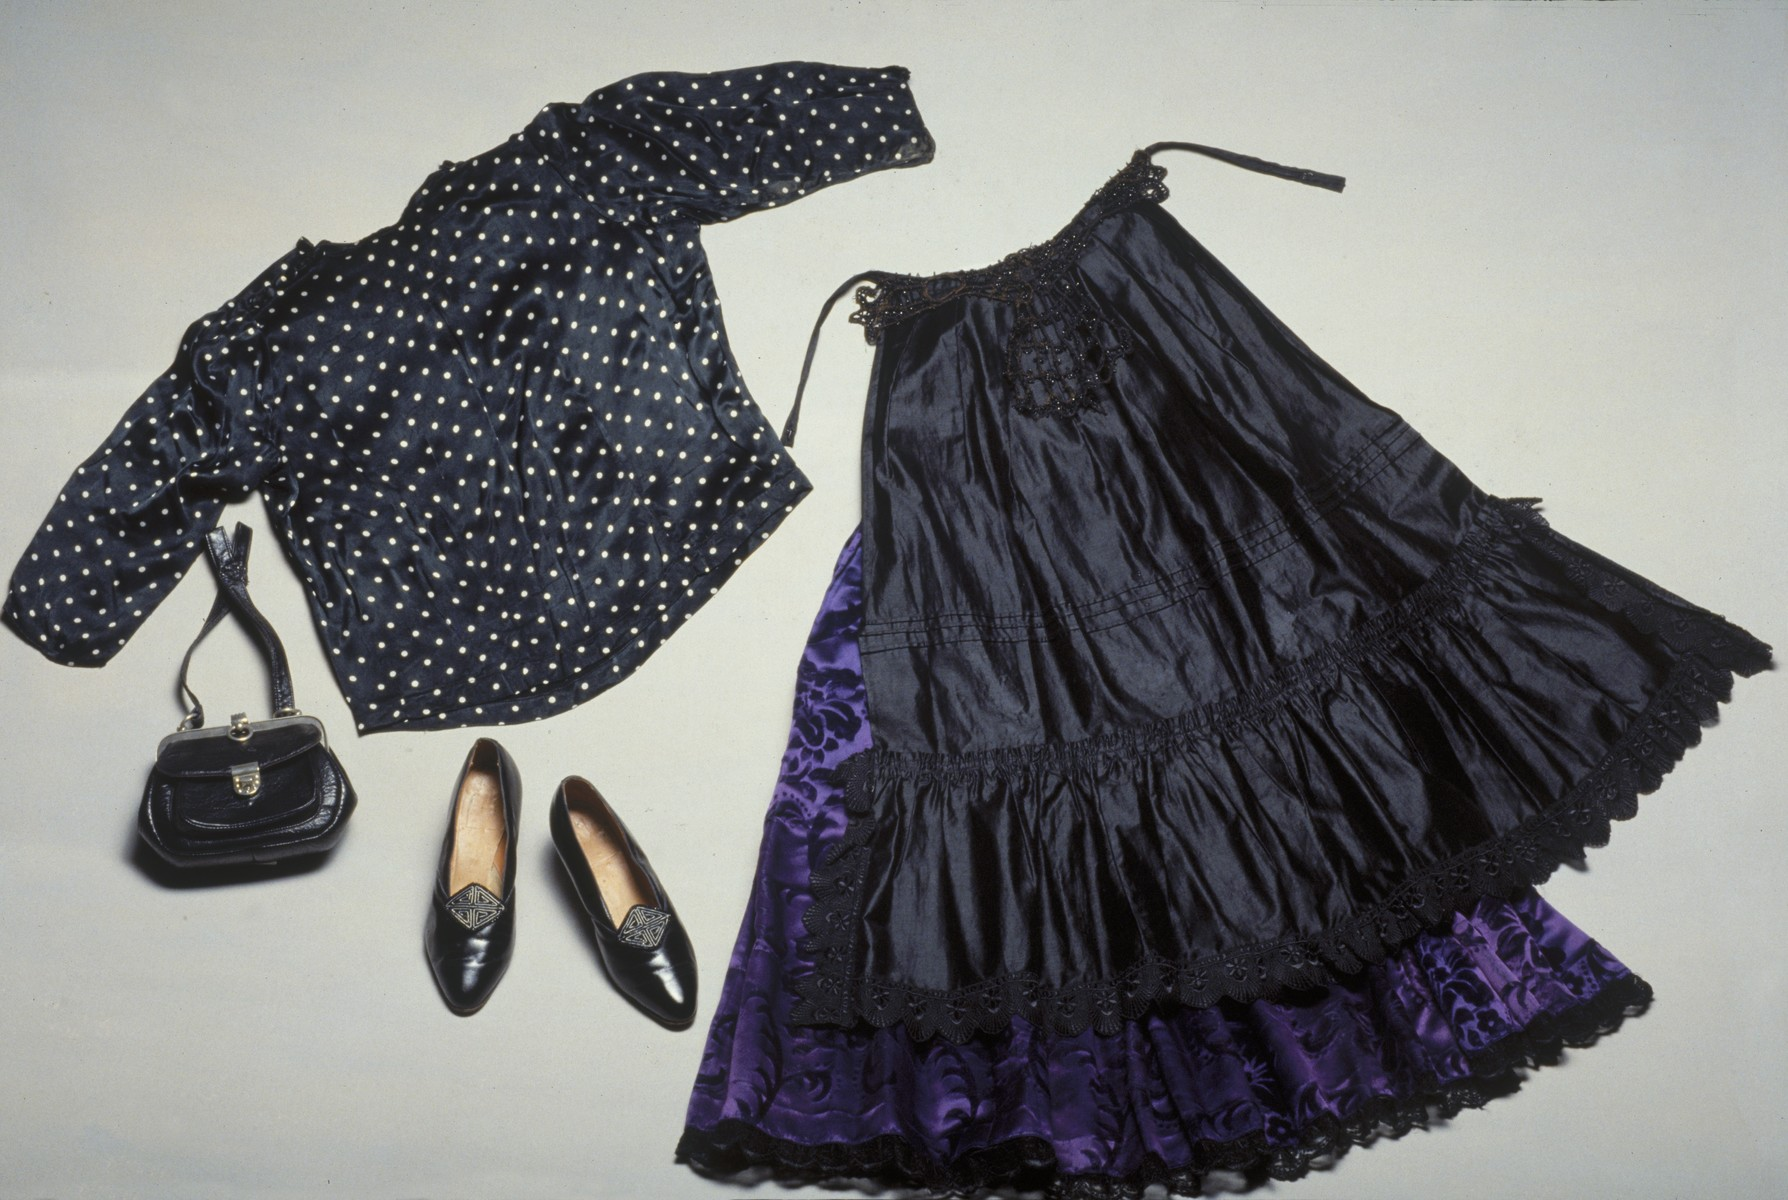 Composite photograph of items of apparel used by female members of a German Sinti (Gypsy) tribe, including two skirts, a blouse, a purse and a pair of shoes.